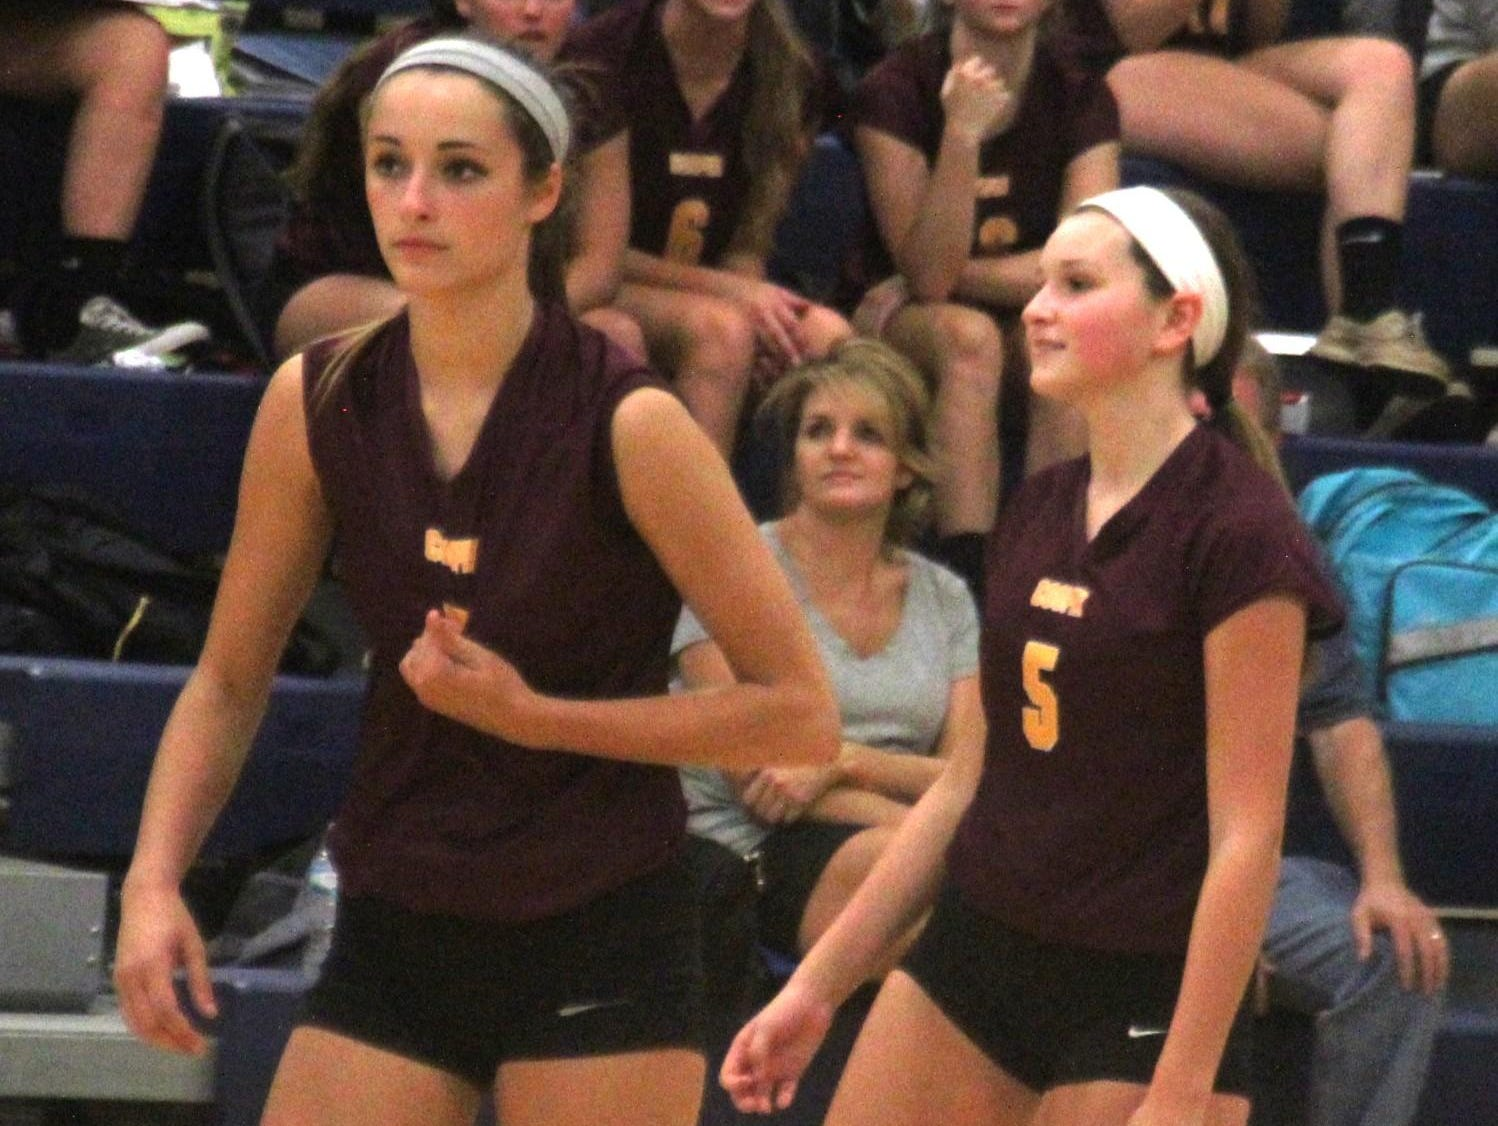 Scott d. Cooper 3-0 in volleyball Sept. 10, 2015 at Scott HS, Taylor Mill. Cooper's Kaity Smith, left, and Madie Buys rally between points.